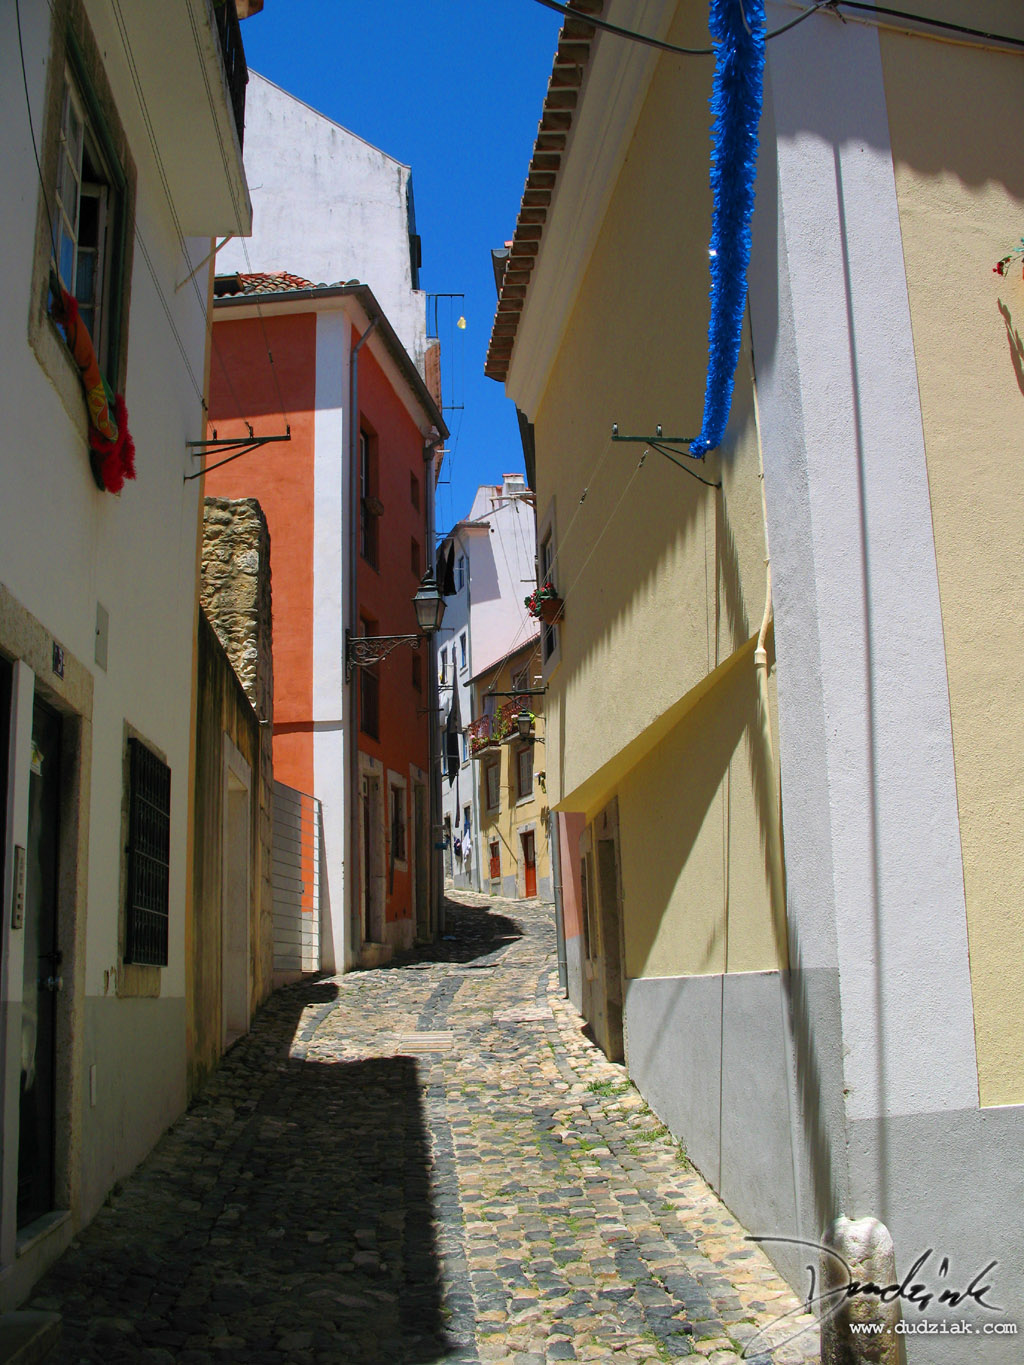 Lisbon has some great colorful winding back streets near the Castelo de Sao Jorge.